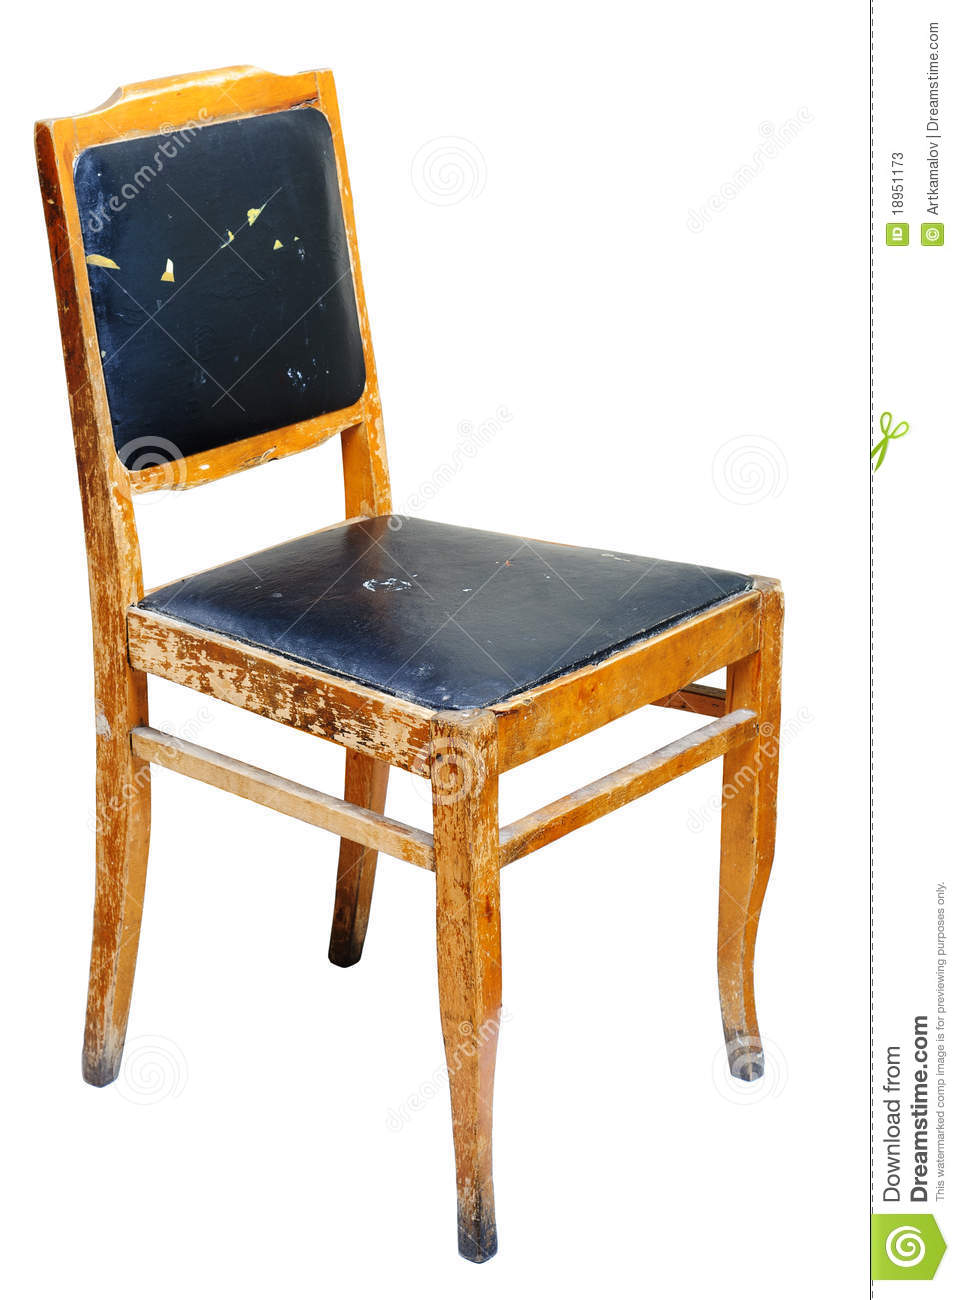 Old wooden chair isolated on white background with clipping path